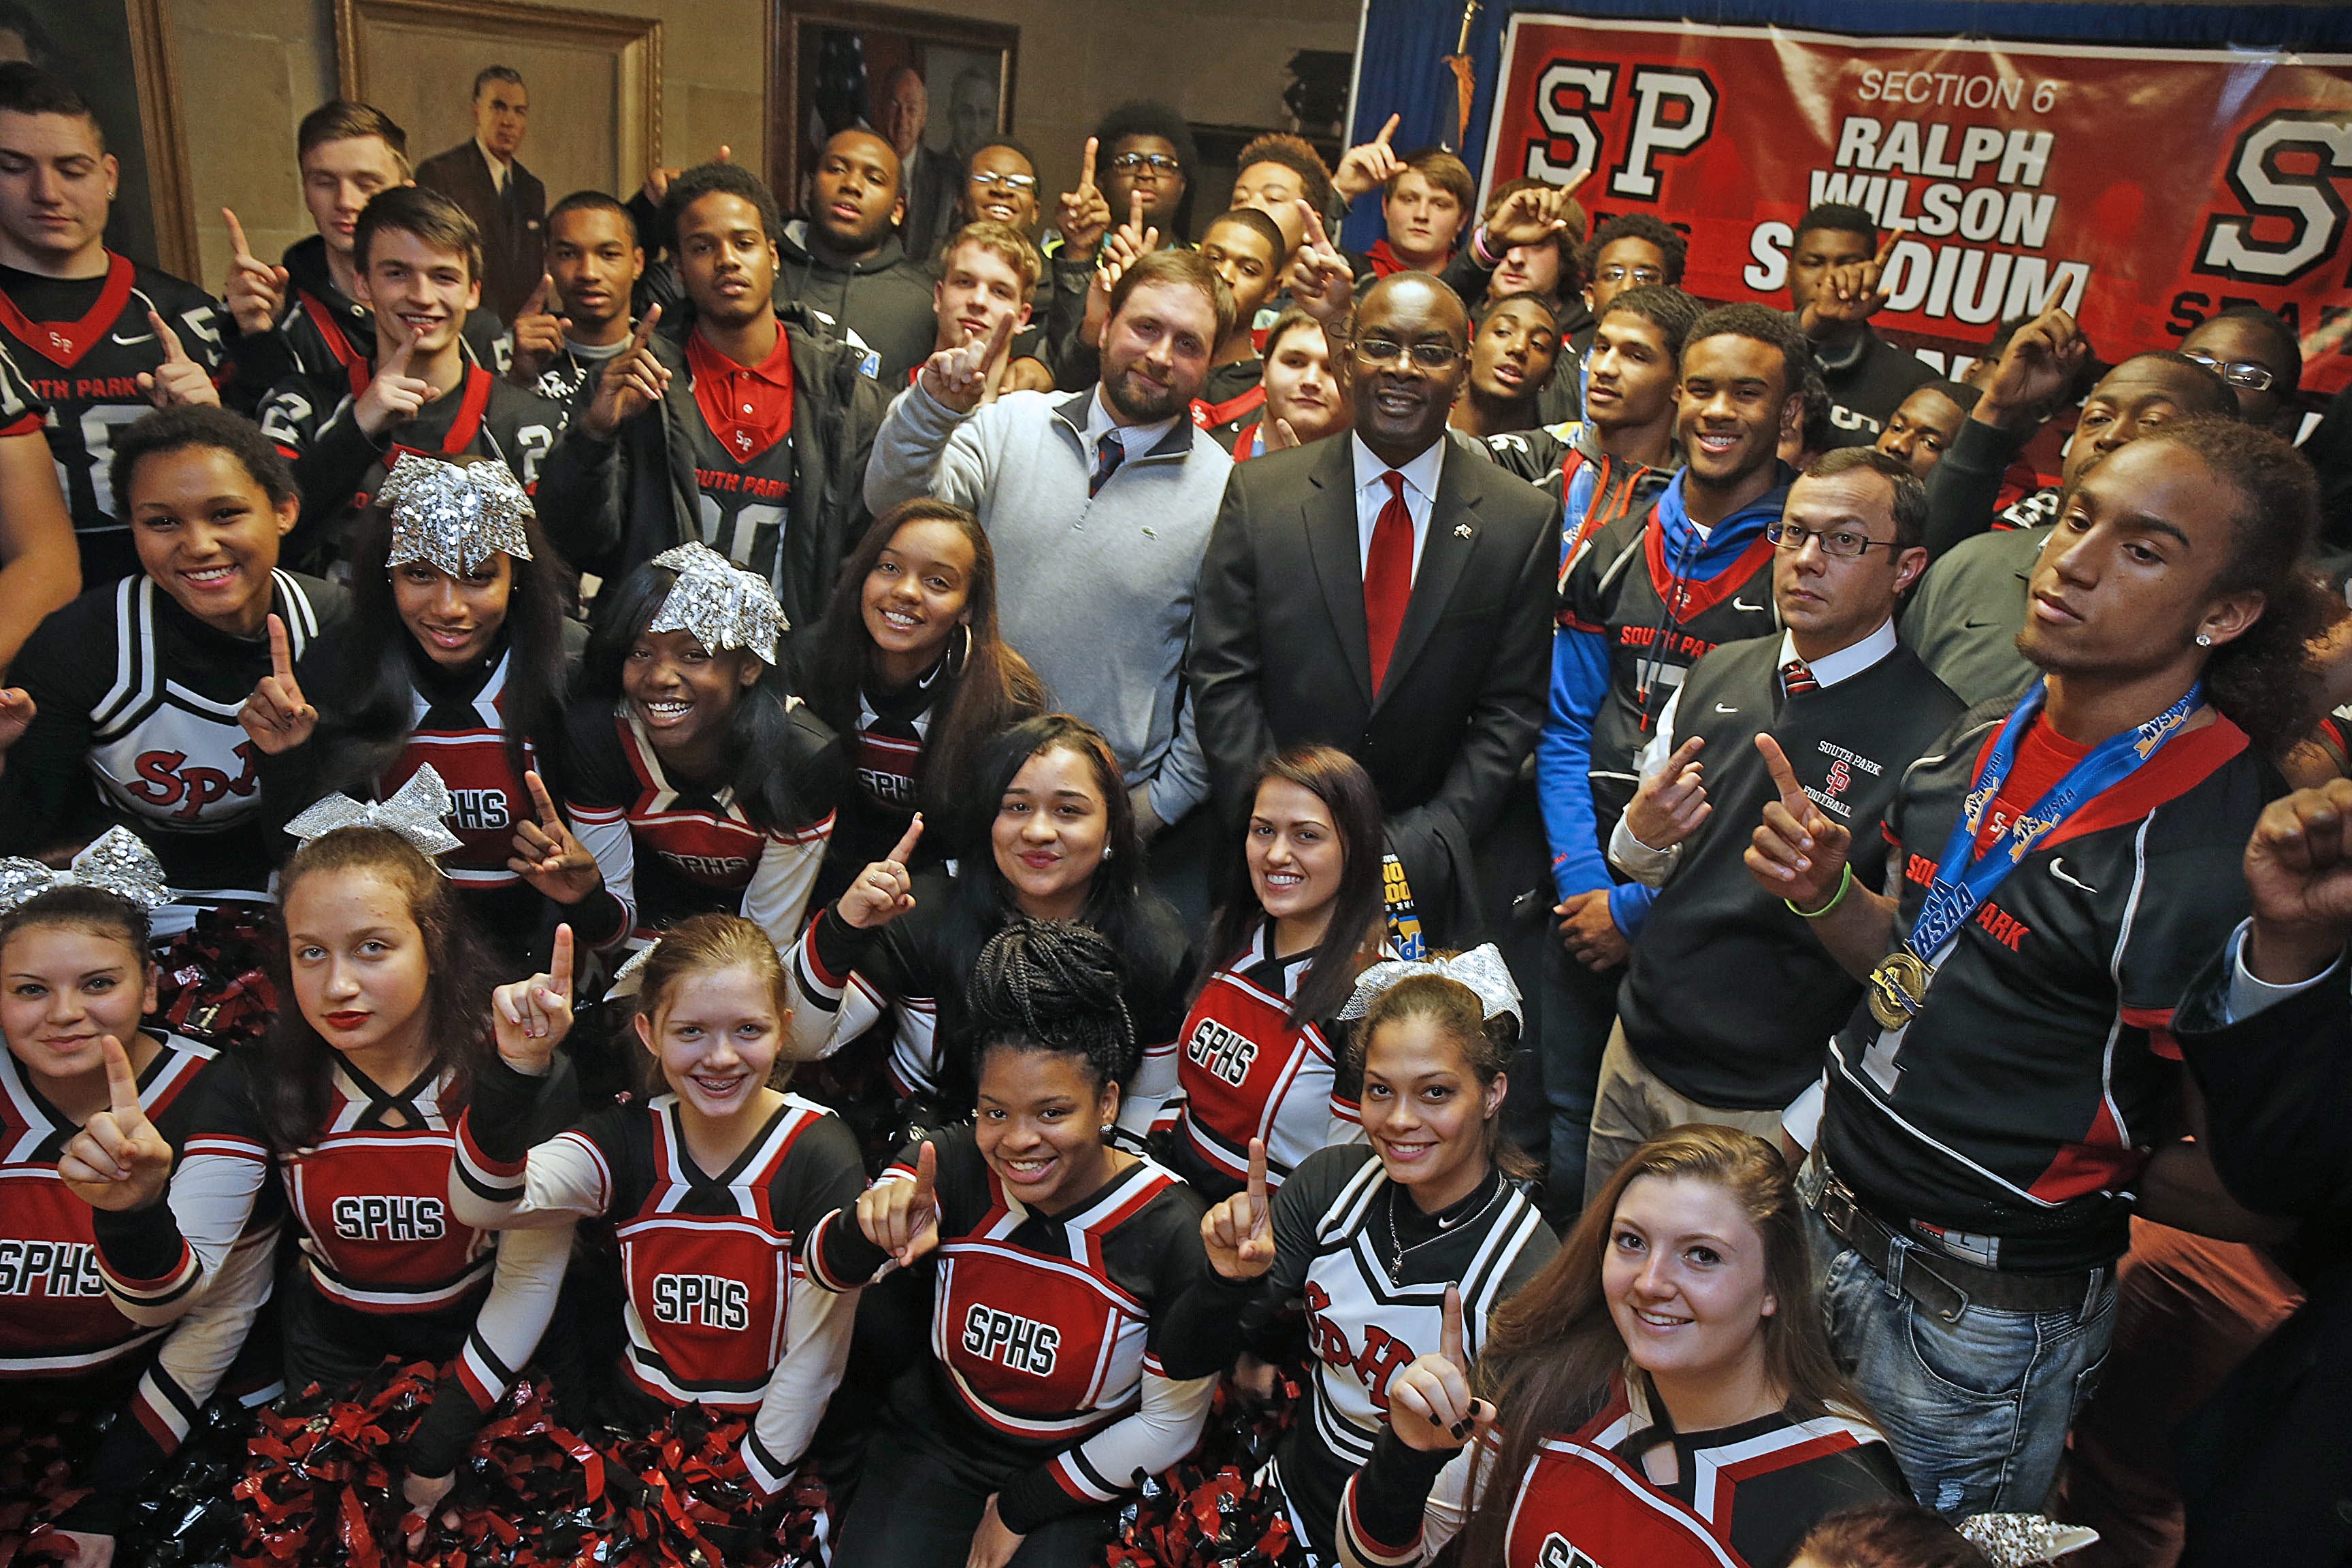 Mayor Byron Brown, center, with South Park coach Timothy Delaney on his right, welcomed state champions to City Hall.